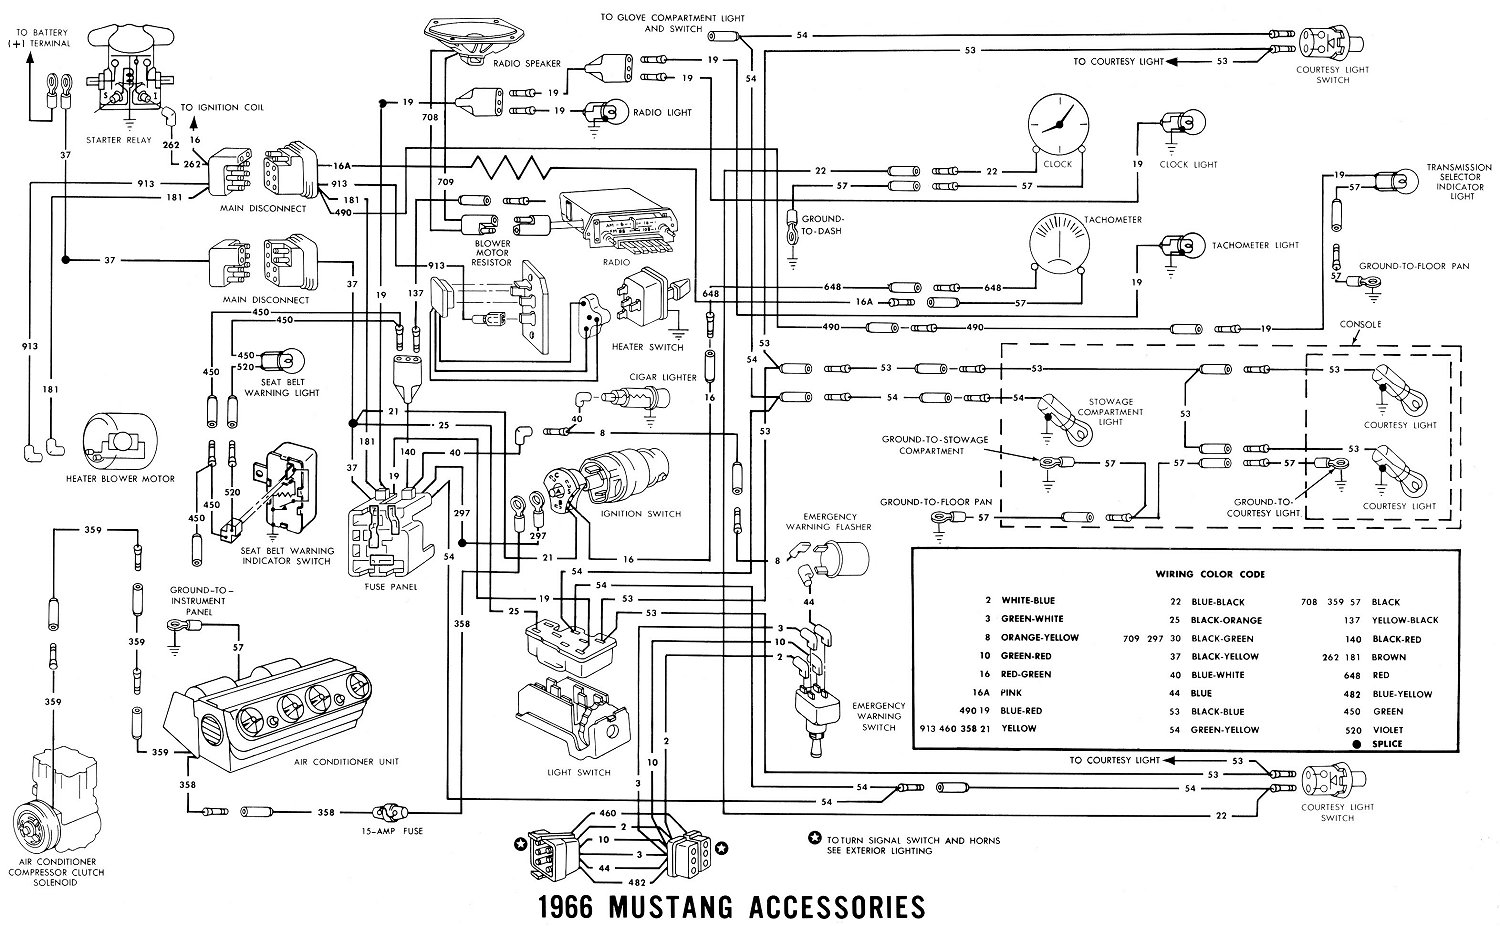 66acces1 66 mustang wiring diagram 66 mustang dash wiring diagram ~ odicis 74 Mustang at panicattacktreatment.co